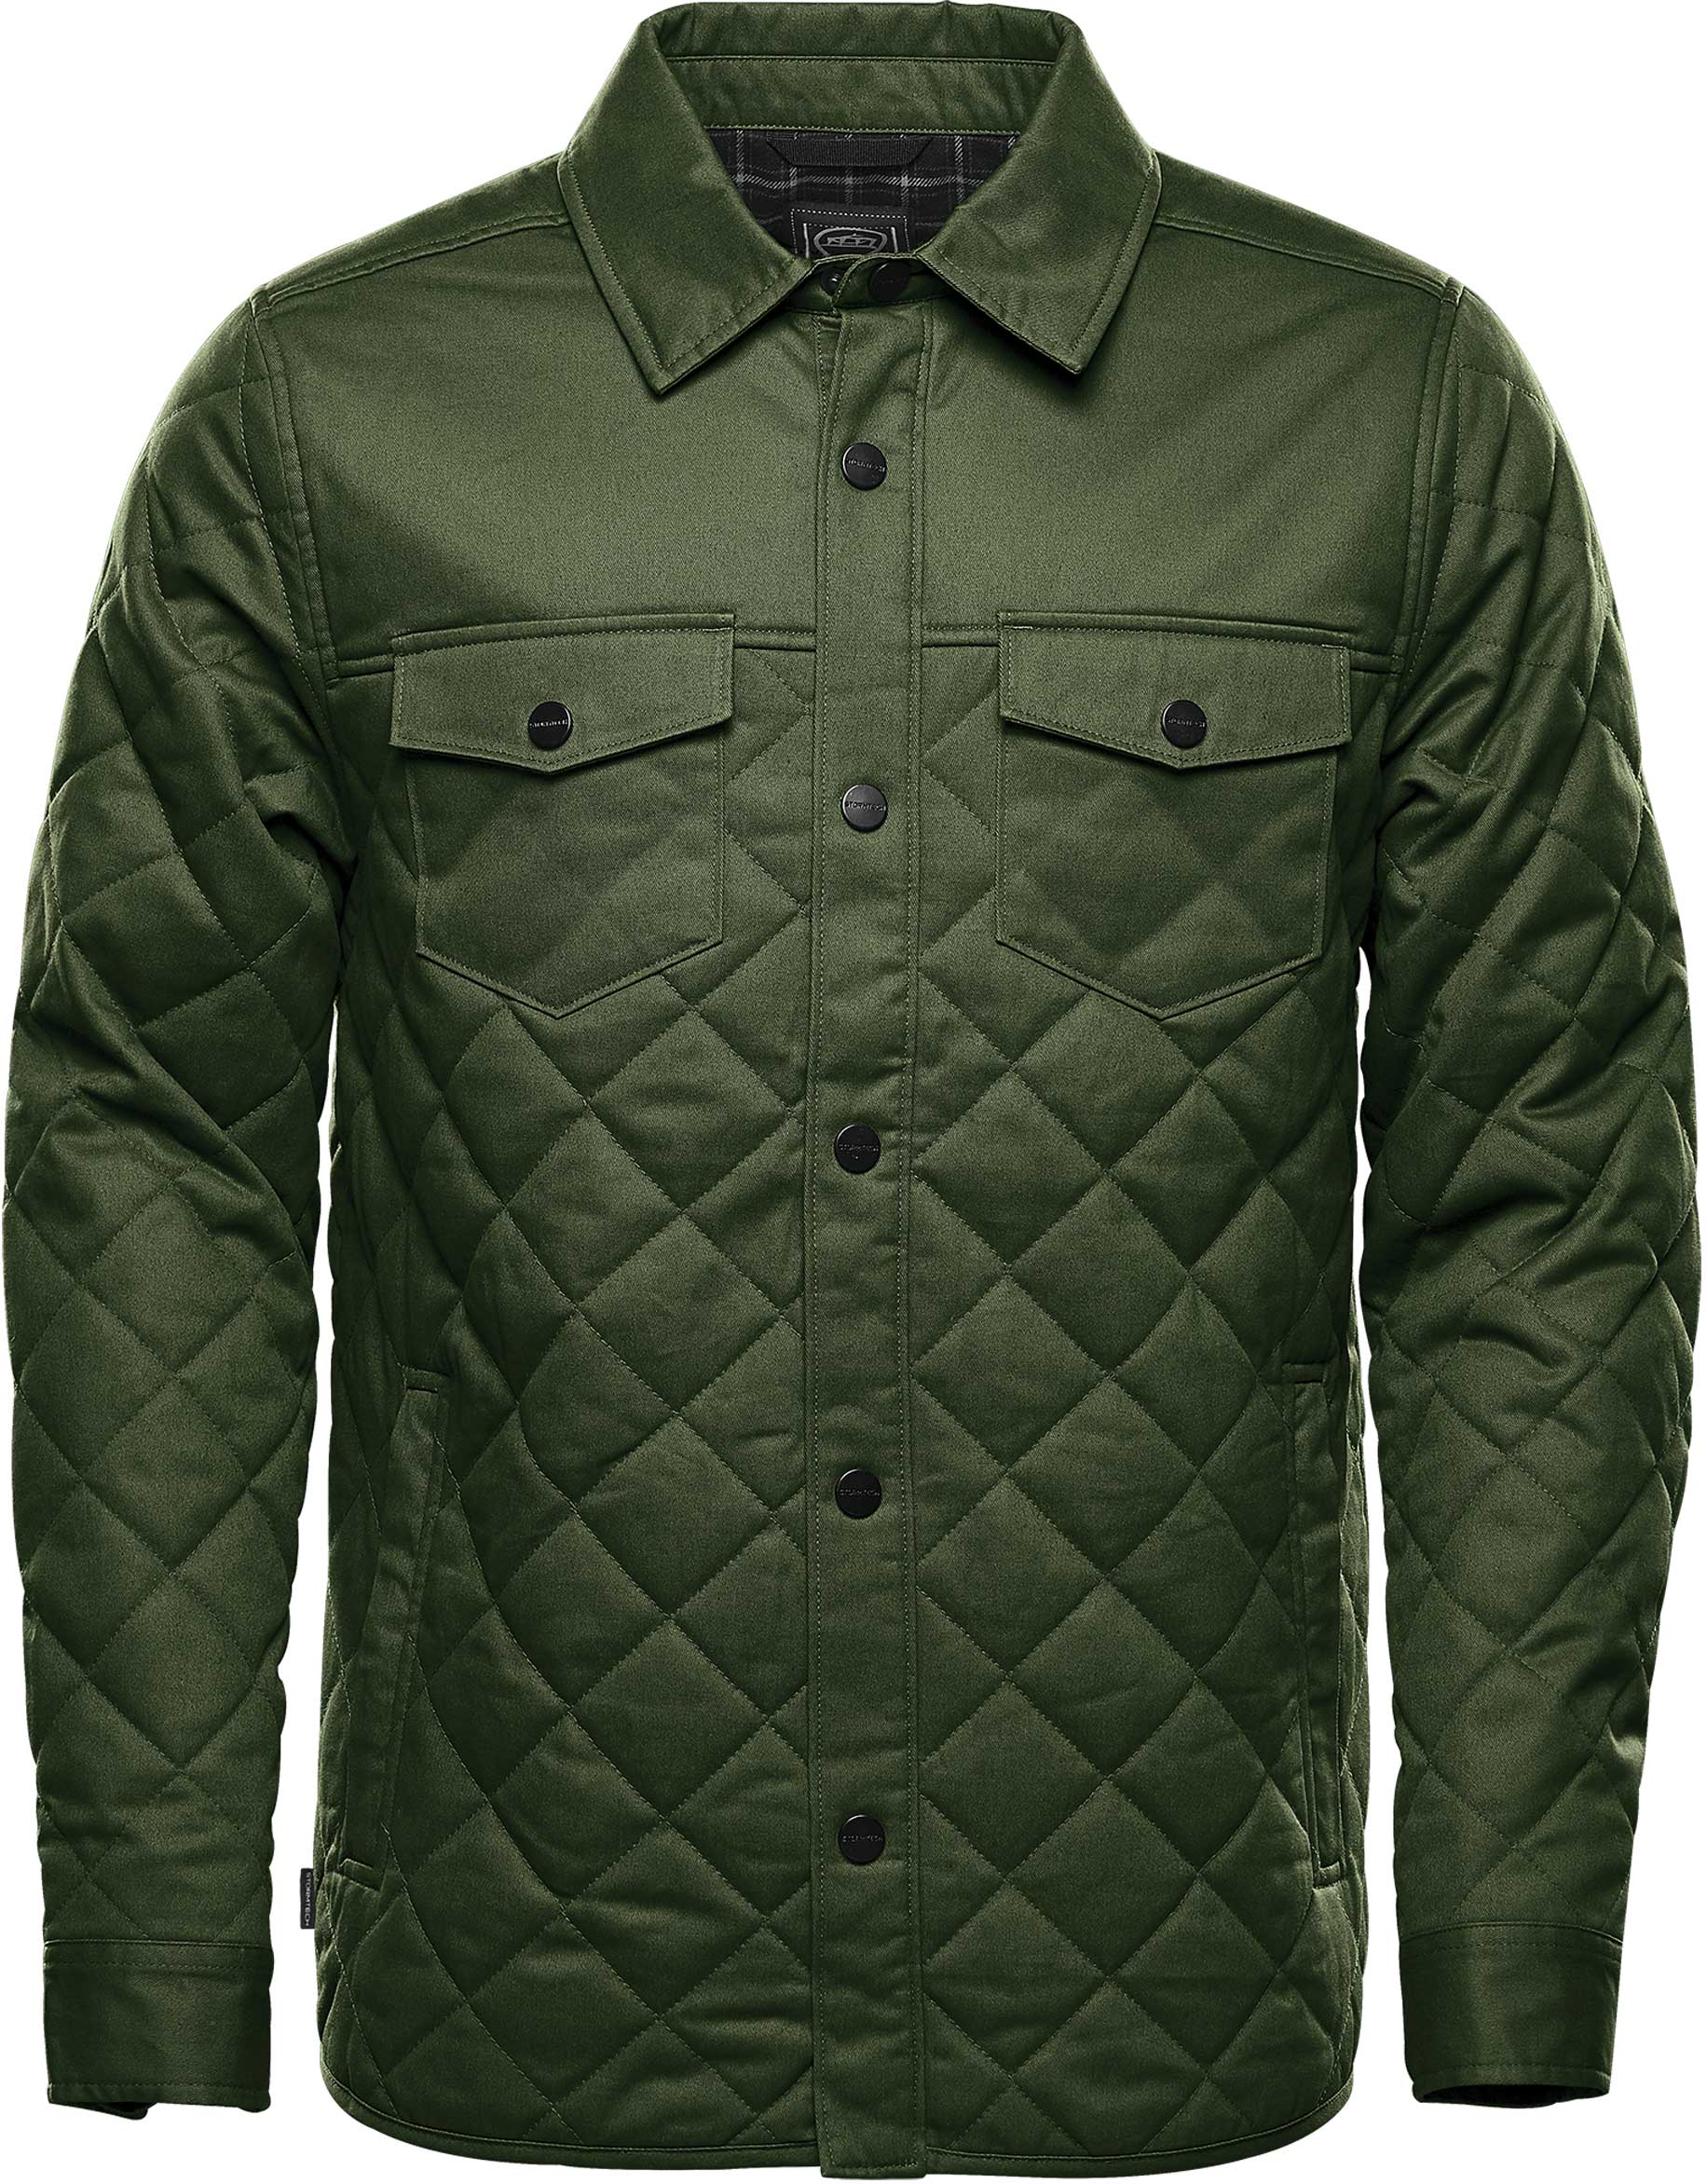 Picture of Stormtech Men's Bushwick Quilted Jacket